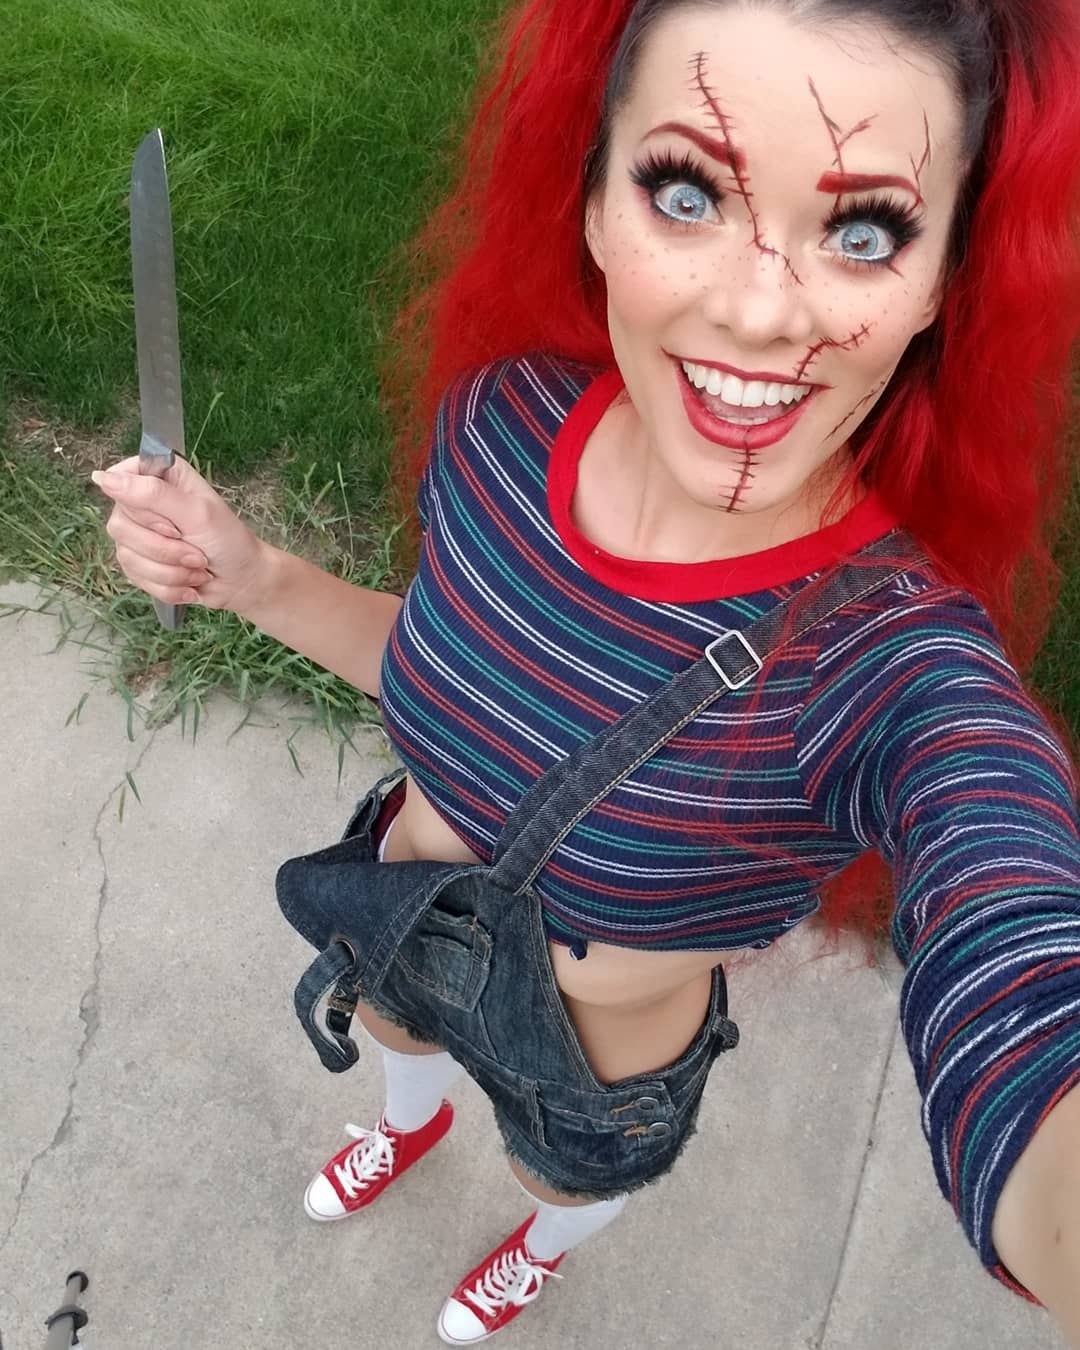 TIME FOR HORRIFYING LOOK IN CHUCKY HALLOWEEN COSTUME #halloweencostumeswomen